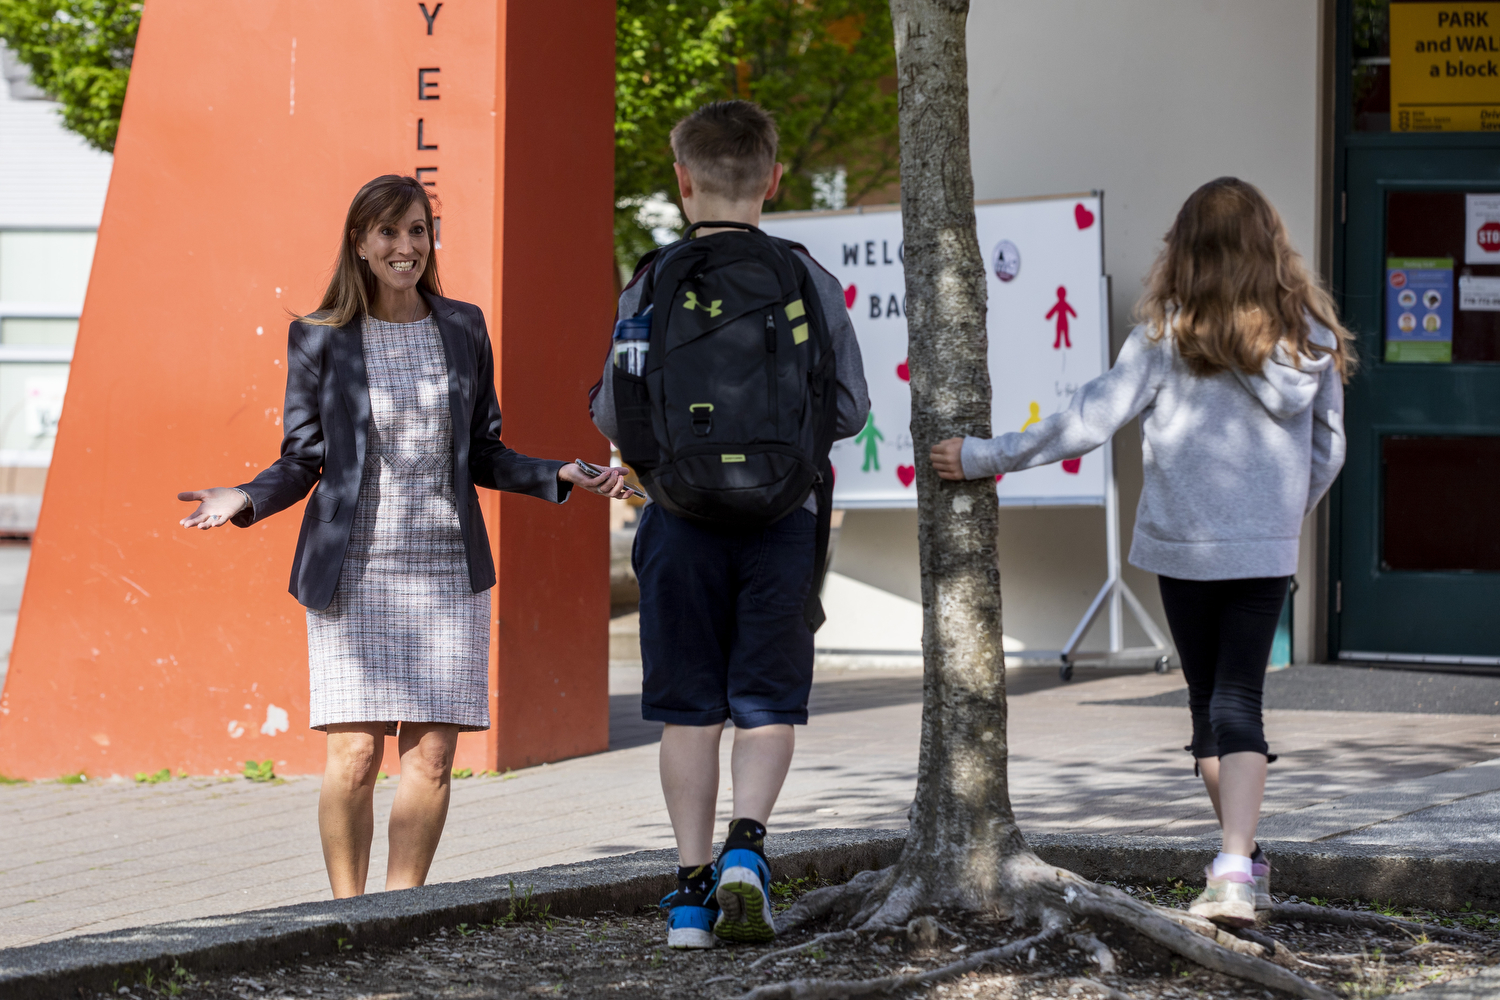 Students are welcomed back to school with physical distancing protocols in place at Lynn Valley Elementary in North Vancouver, B.C., on June 1, 2020, as schools reopened following a shutdown that began during spring break. (Ben Nelms/CBC Vancouver)